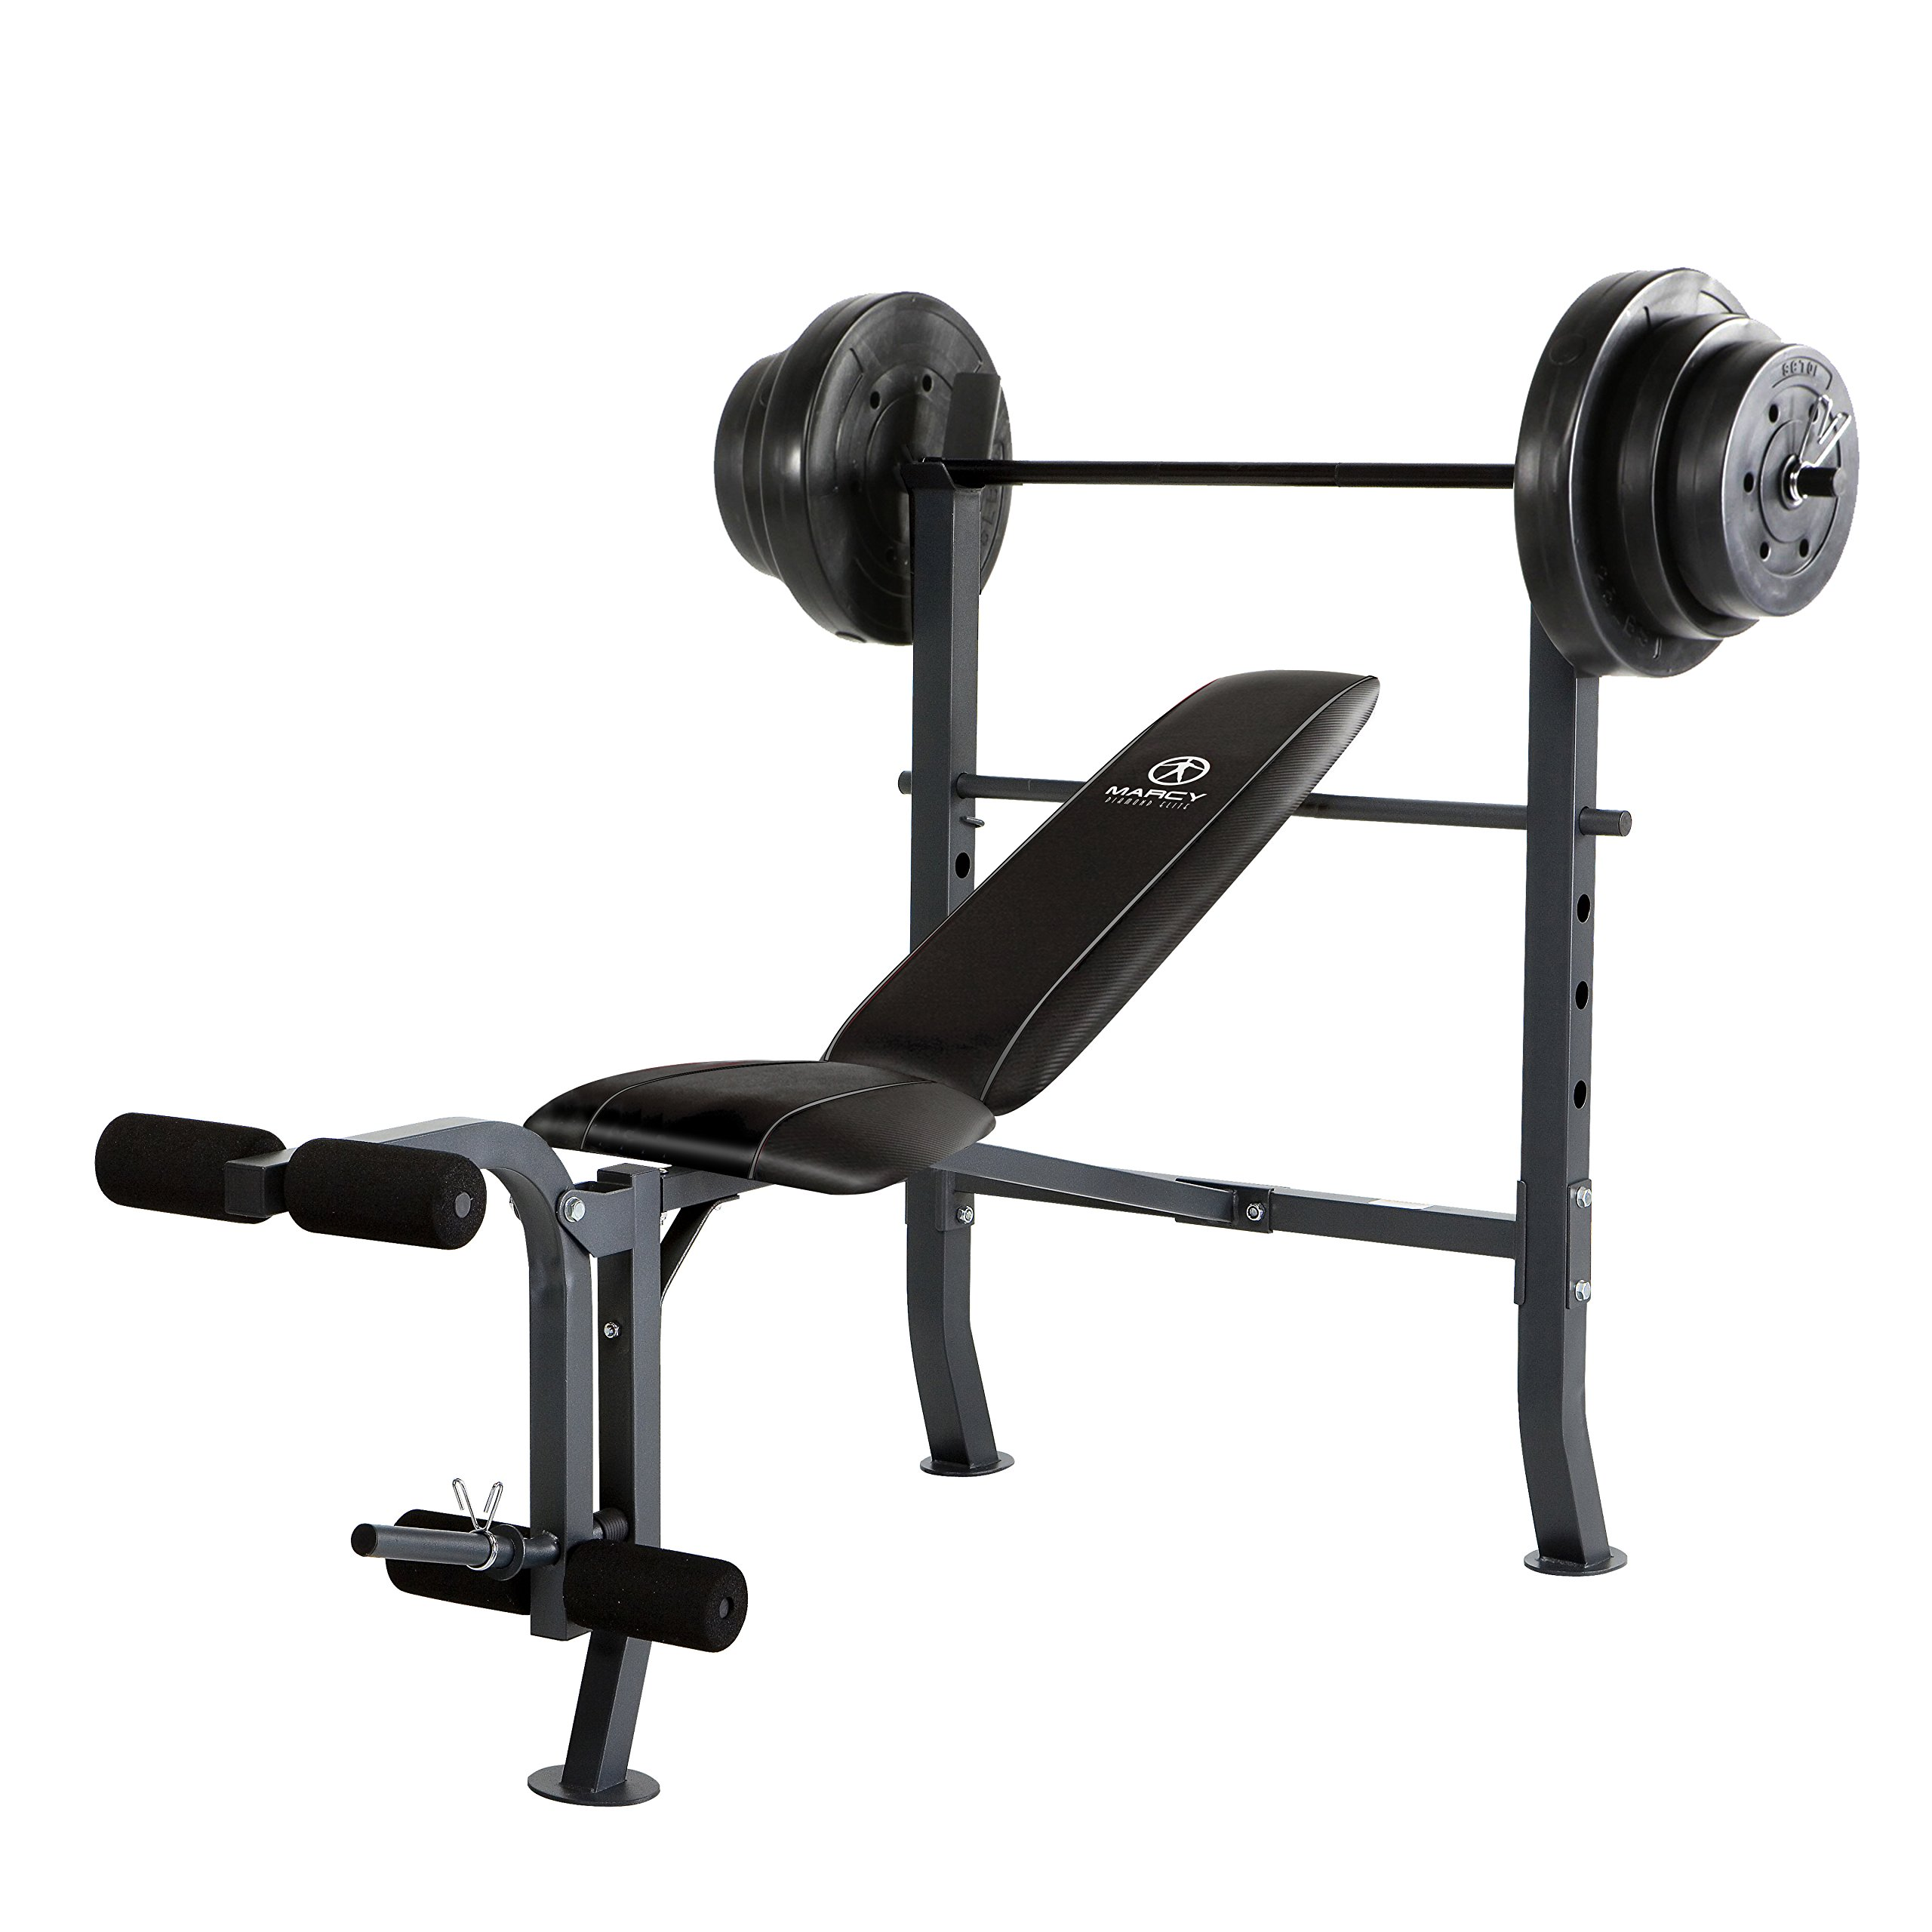 Marcy MD-2082W Diamond Elite MD Standard Bench with 100 lb. Weight Set by Marcy